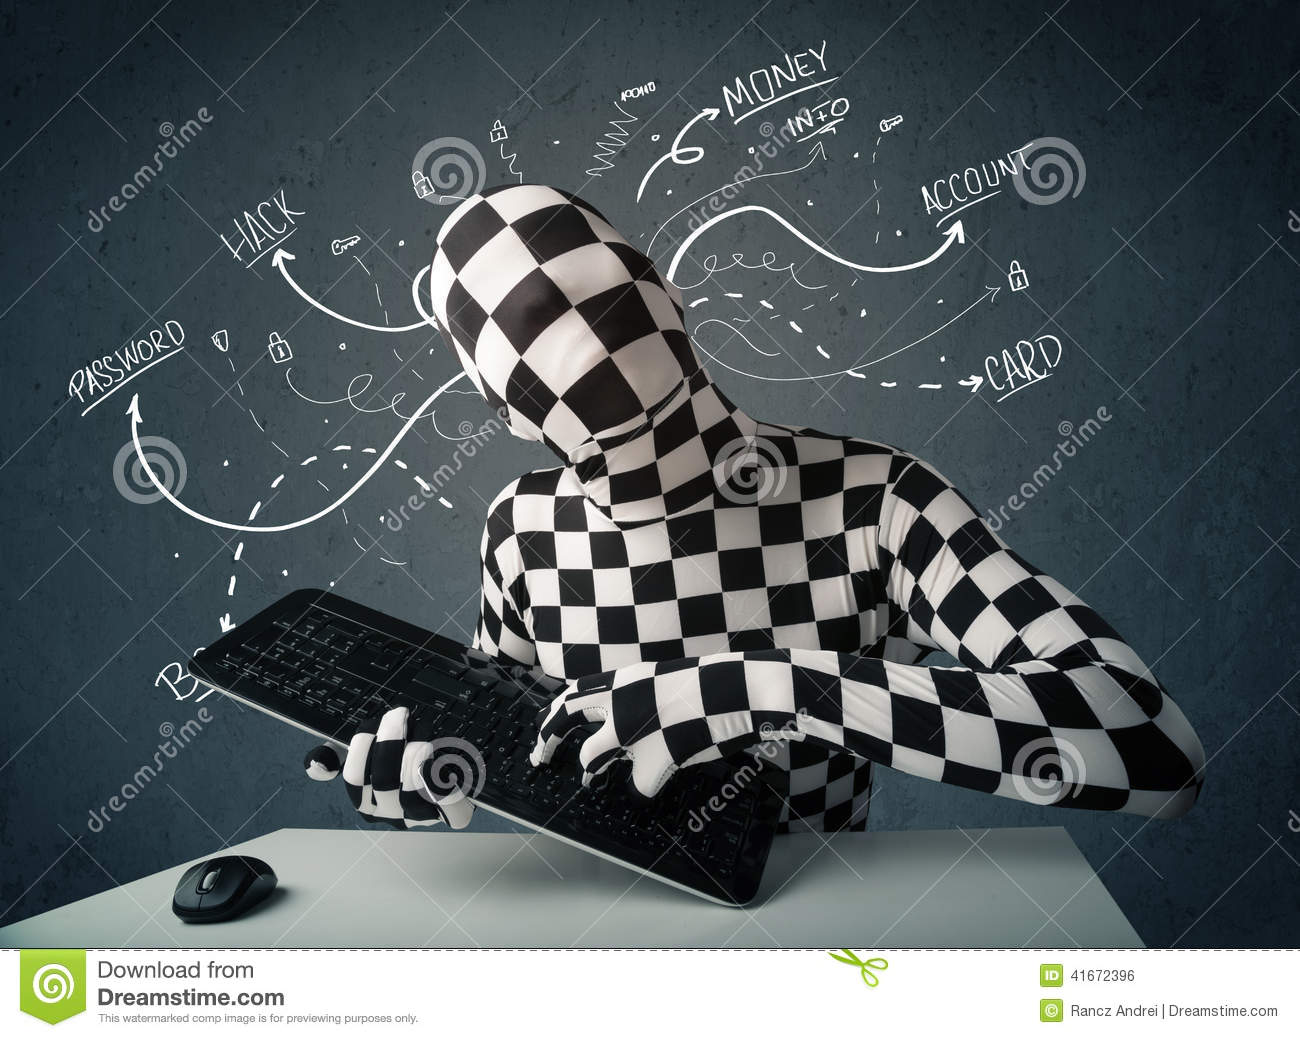 Morphsuit Hacker With White Drawn Line Thoughts Stock Photo - Image ...